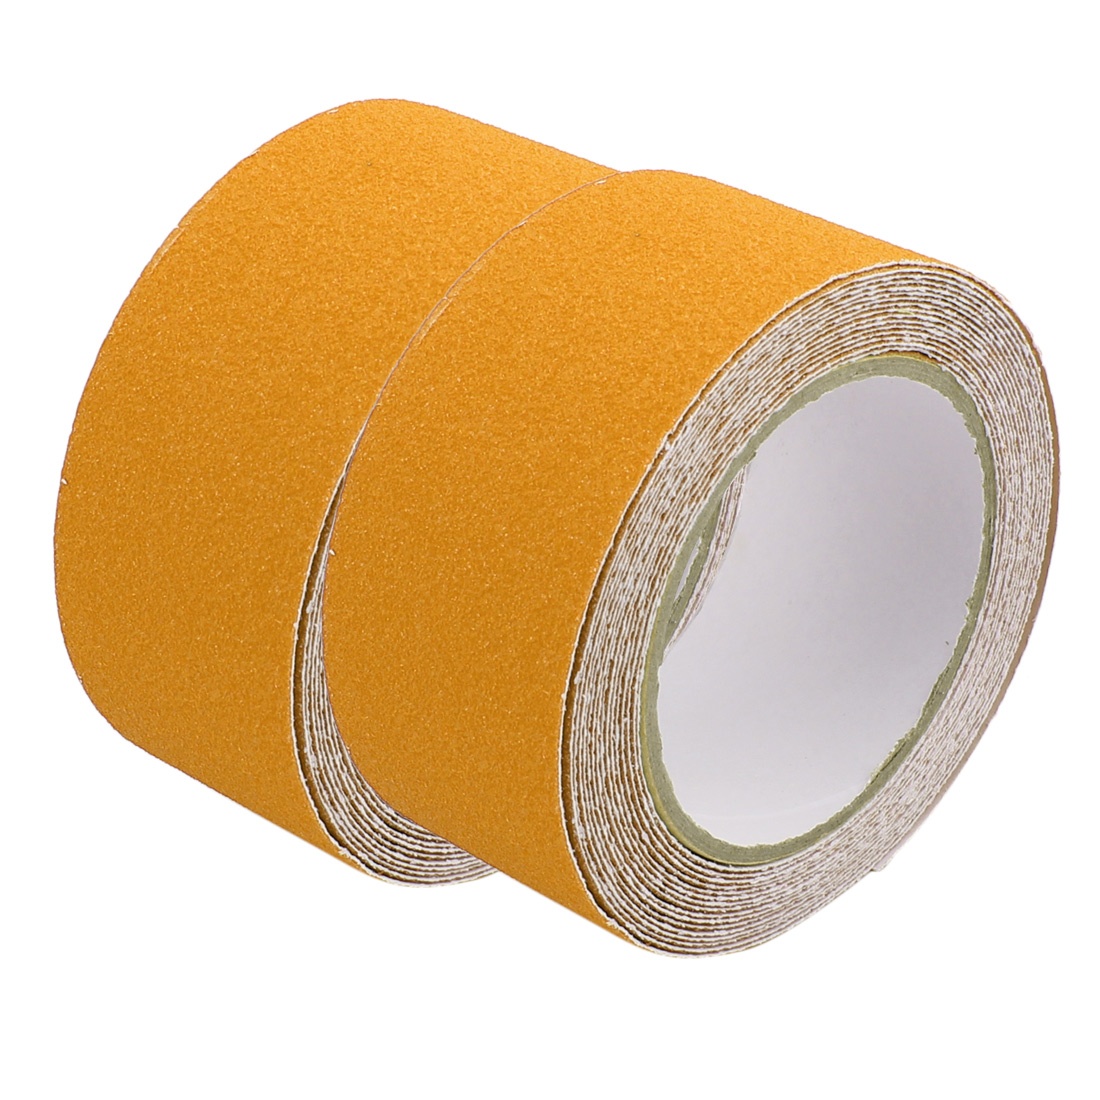 2Pcs Yellow Non-Slip Grip Tape Safety High Traction Indoor Outdoor 50mmx5m